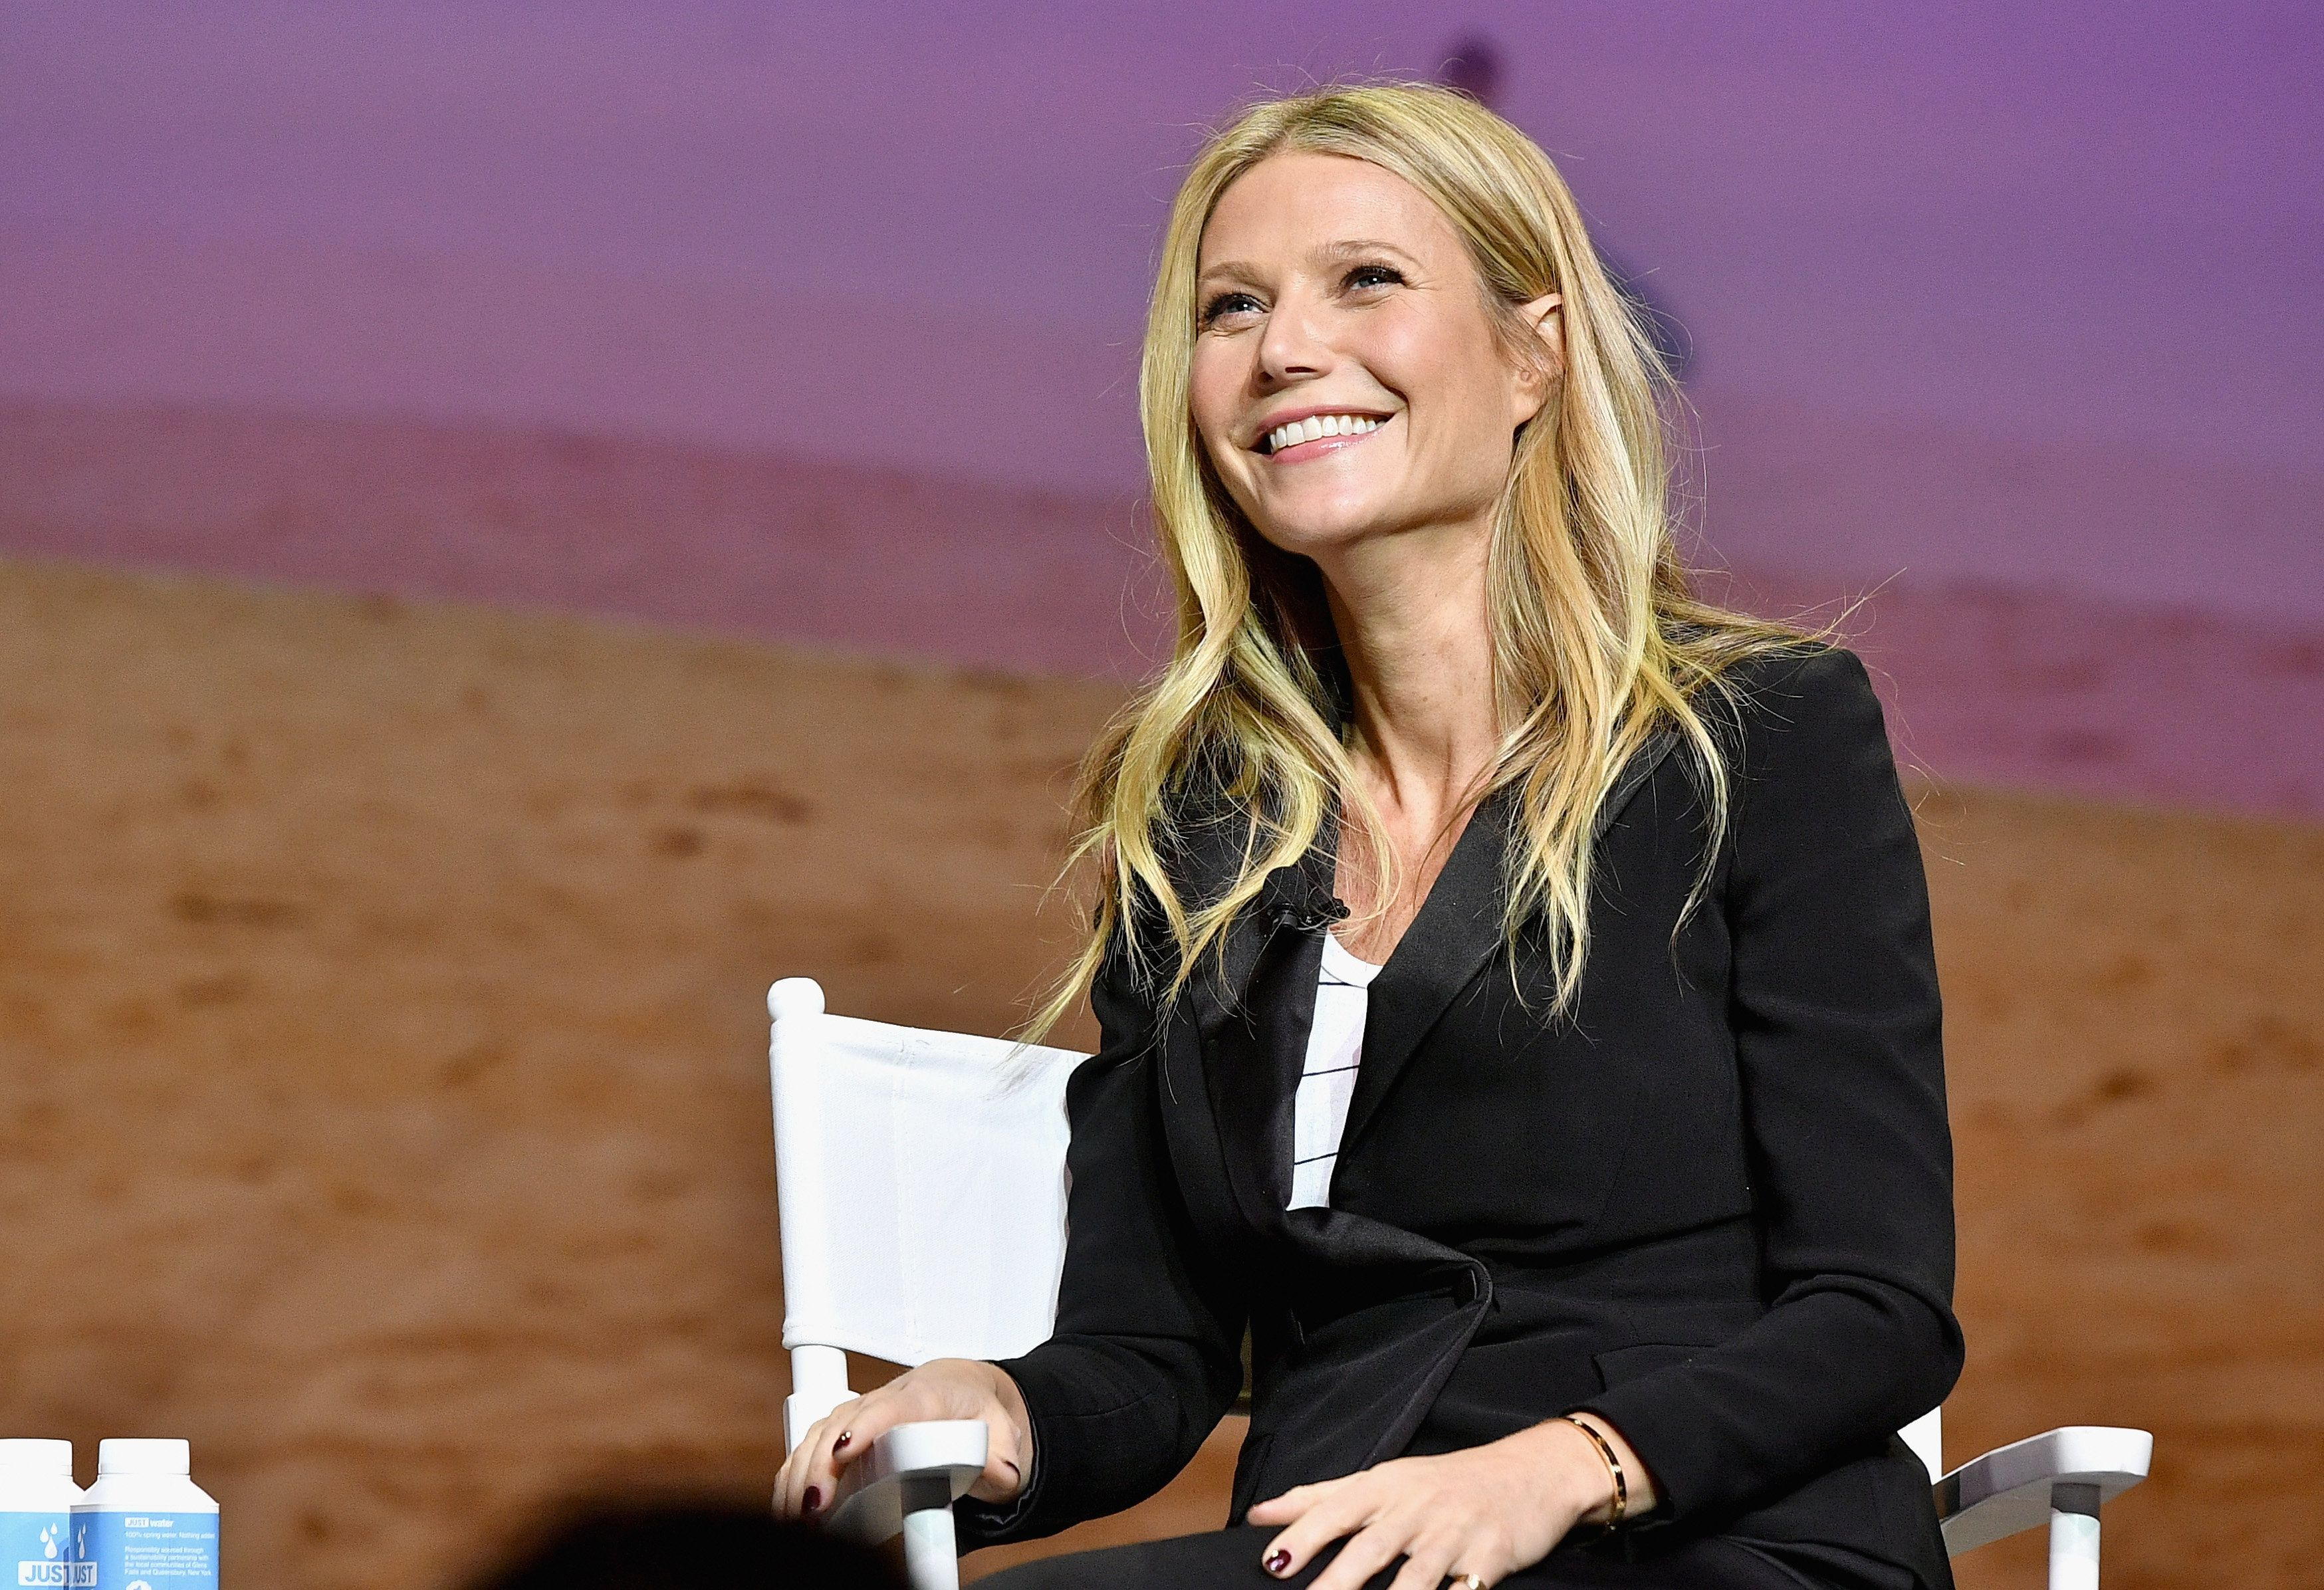 Gwyneth Paltrow's Goop Is Becoming A